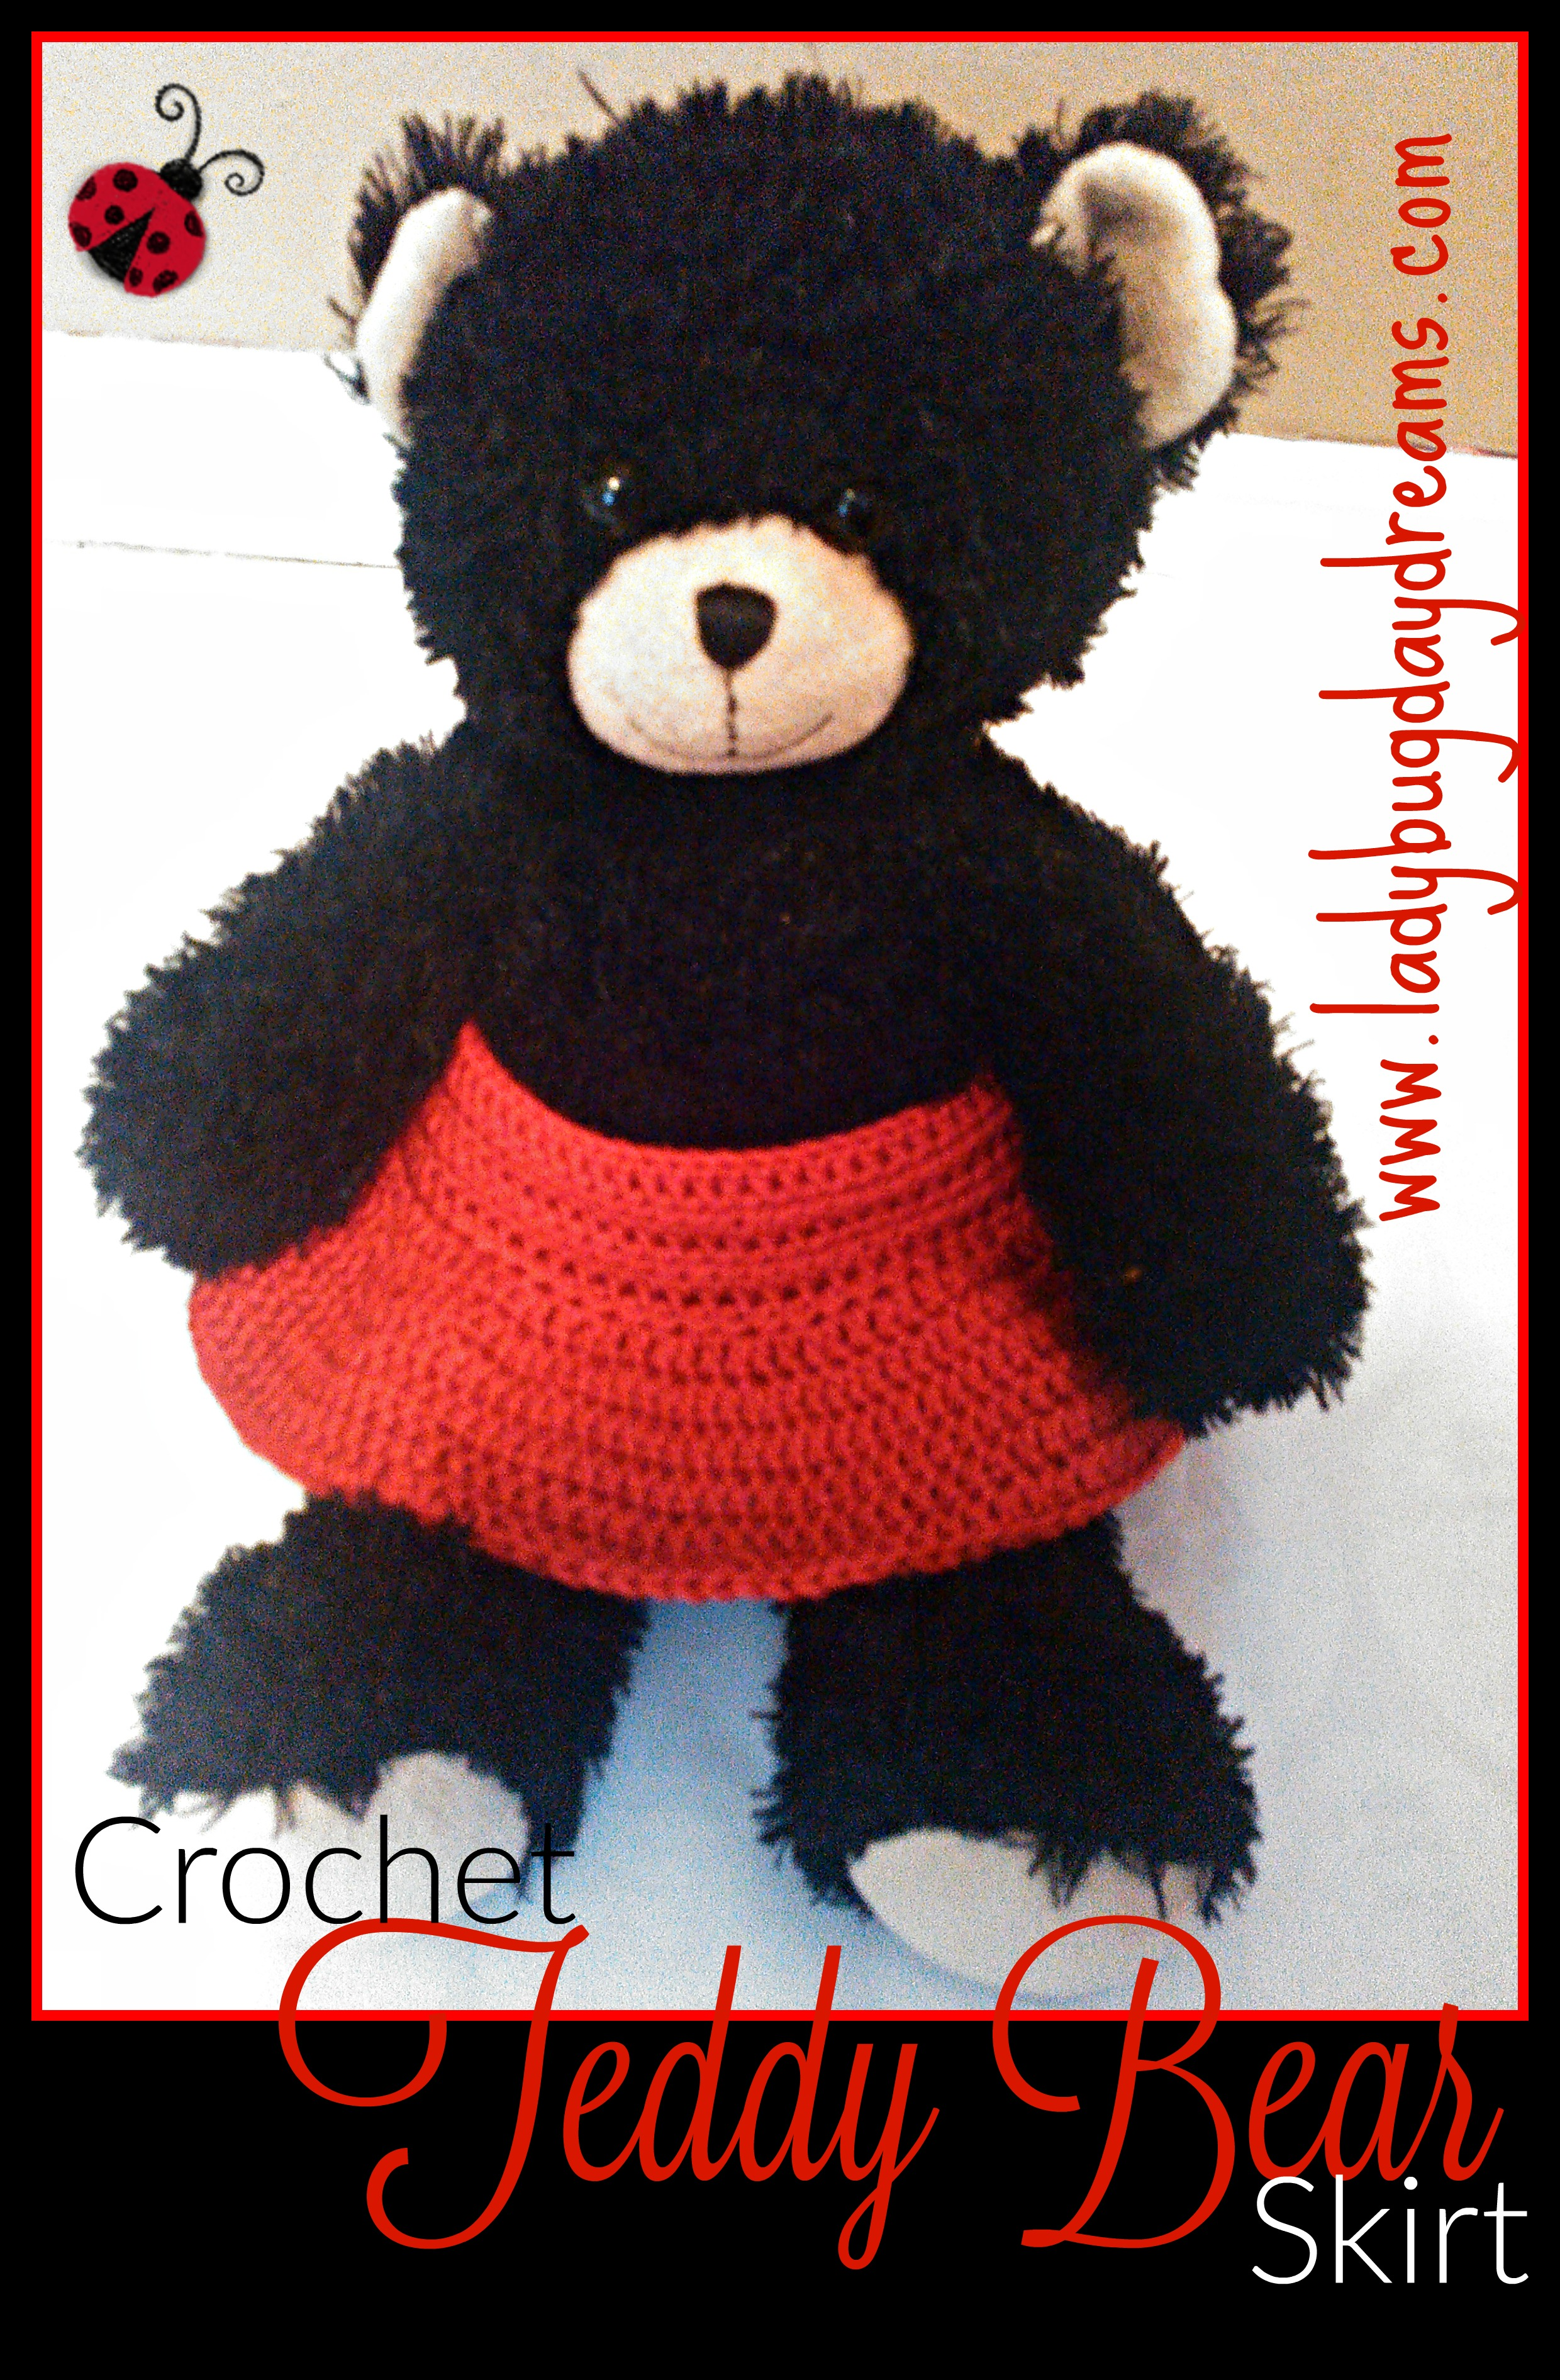 Crochet Teddy Bear Skirt